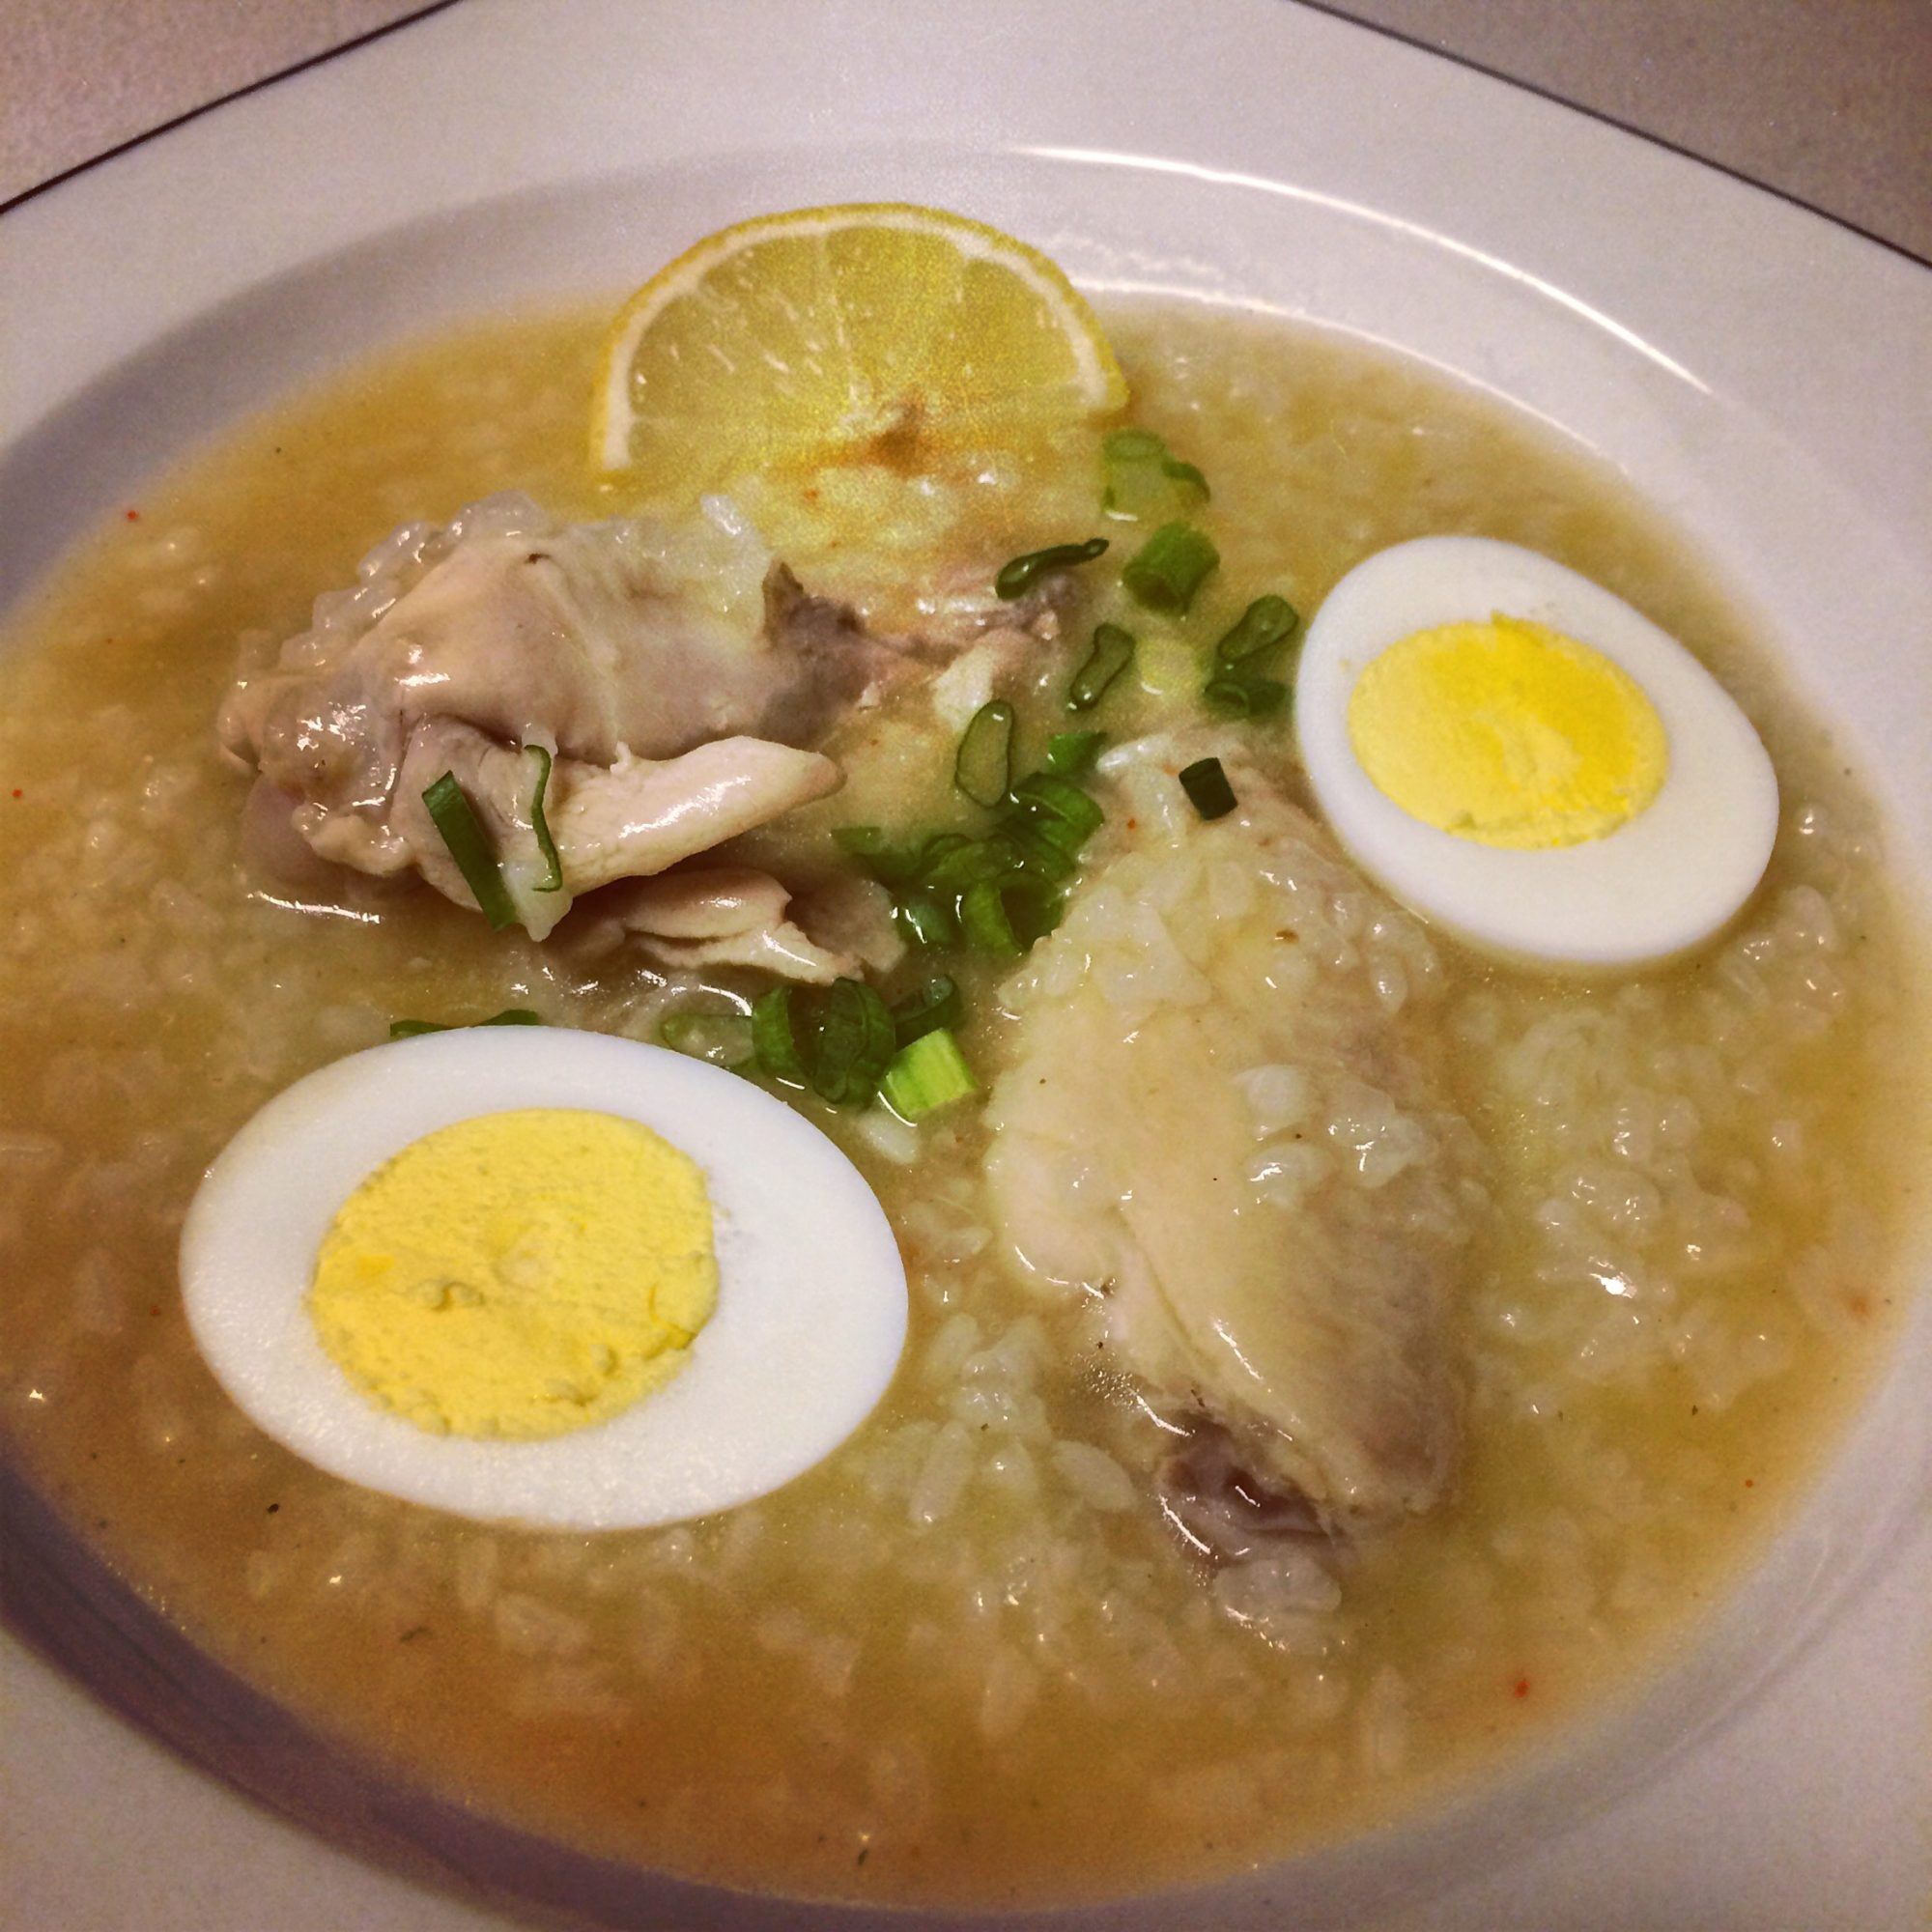 1923512-Chicken-Arroz-Caldo-Chicken-Rice-Porridge-photo-by-lilbadpinay.jpg